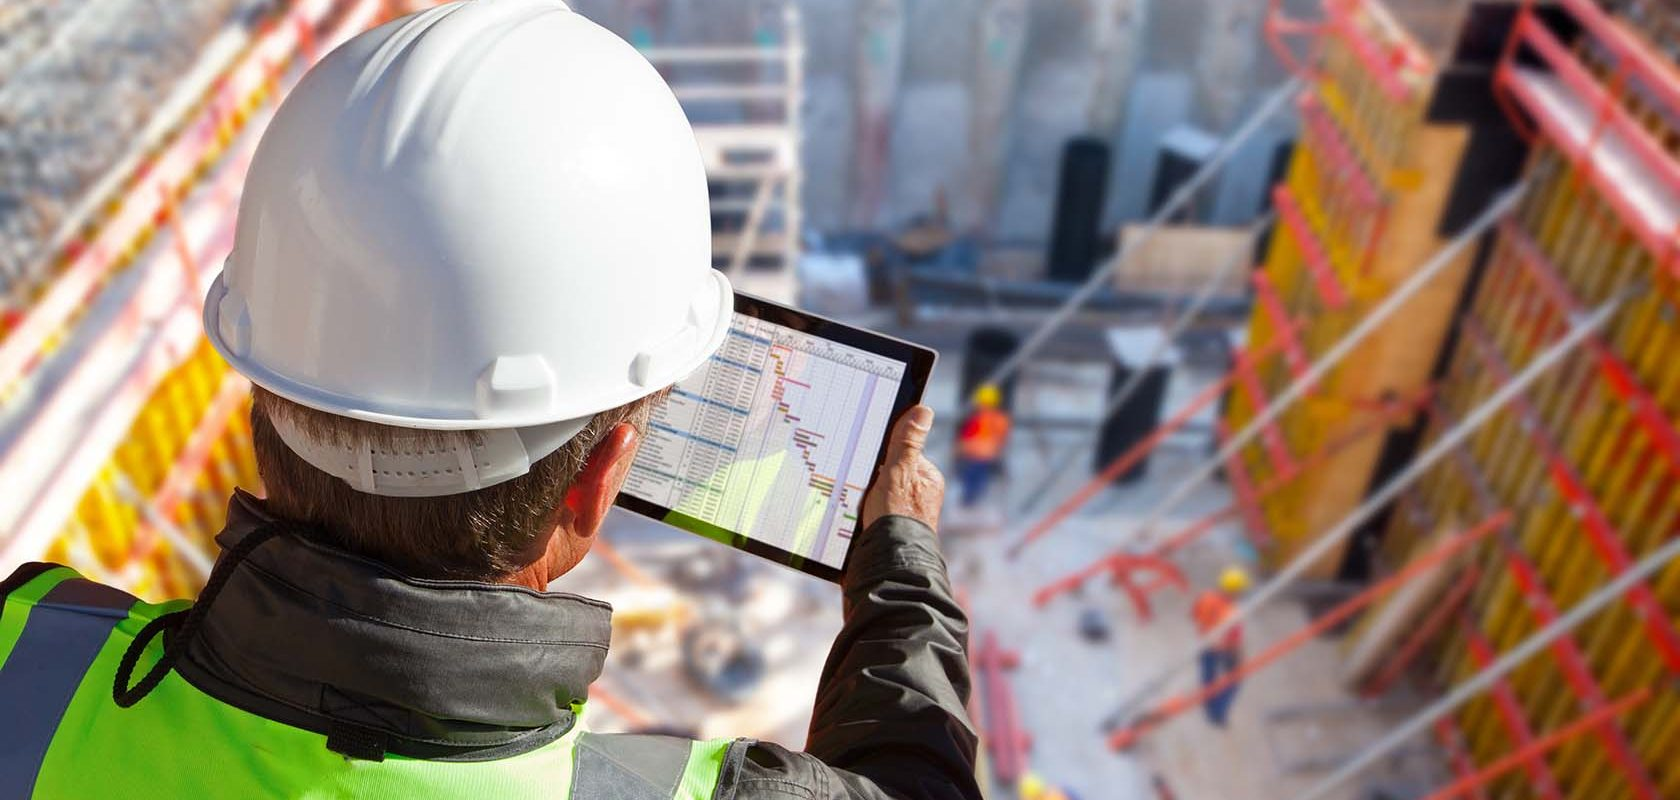 civil engineer or architect on construction site checking schedu